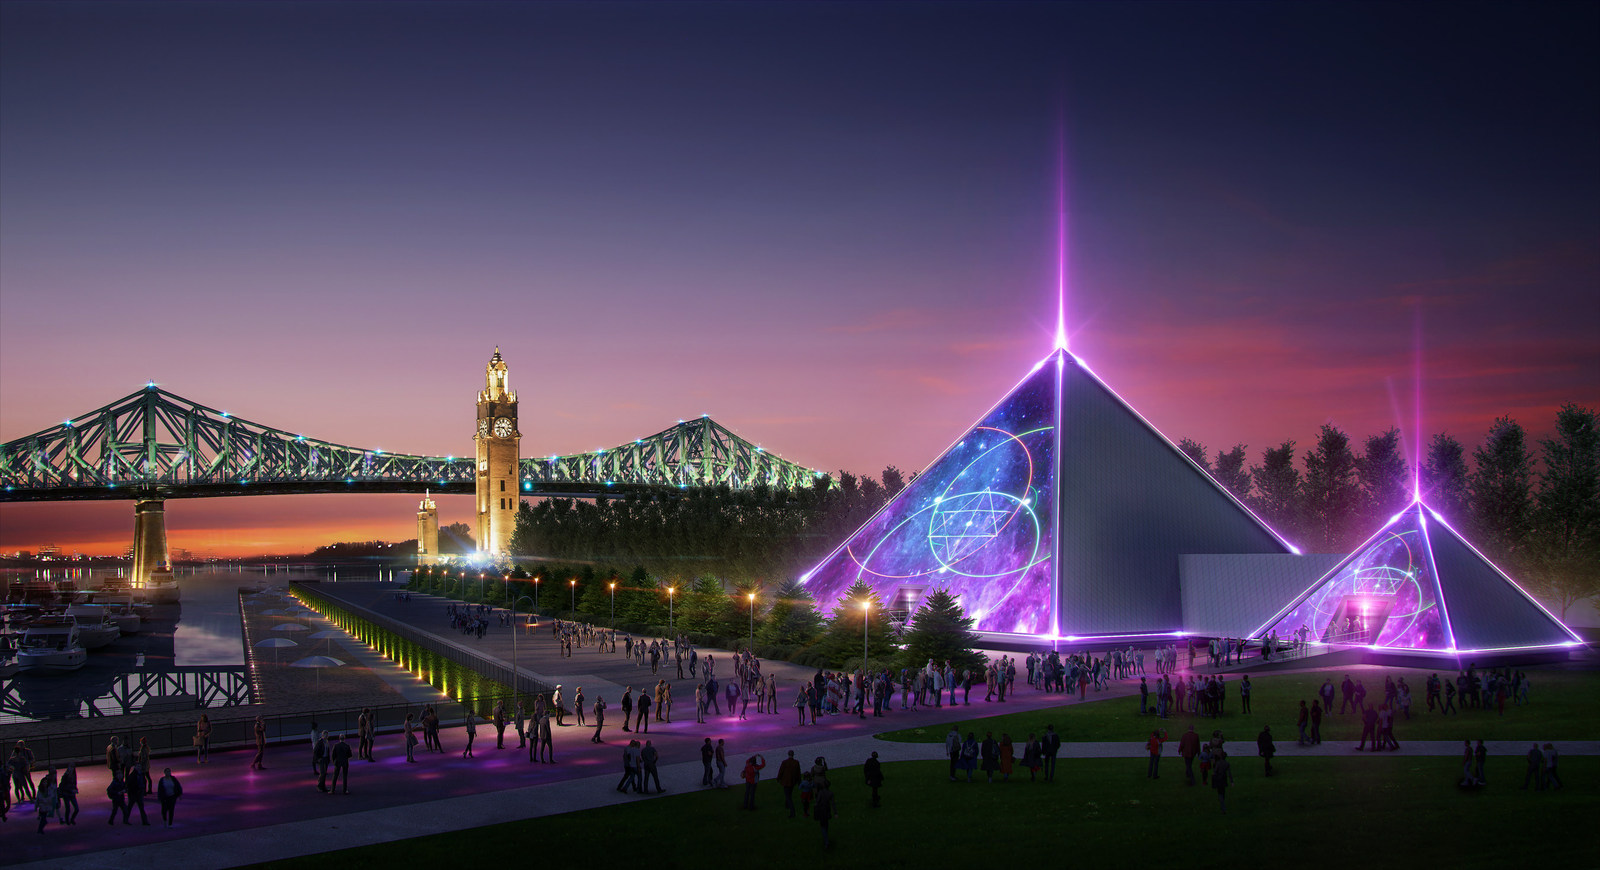 Cirque du Soleil founder is building a pyramid in Montreal's Old Port